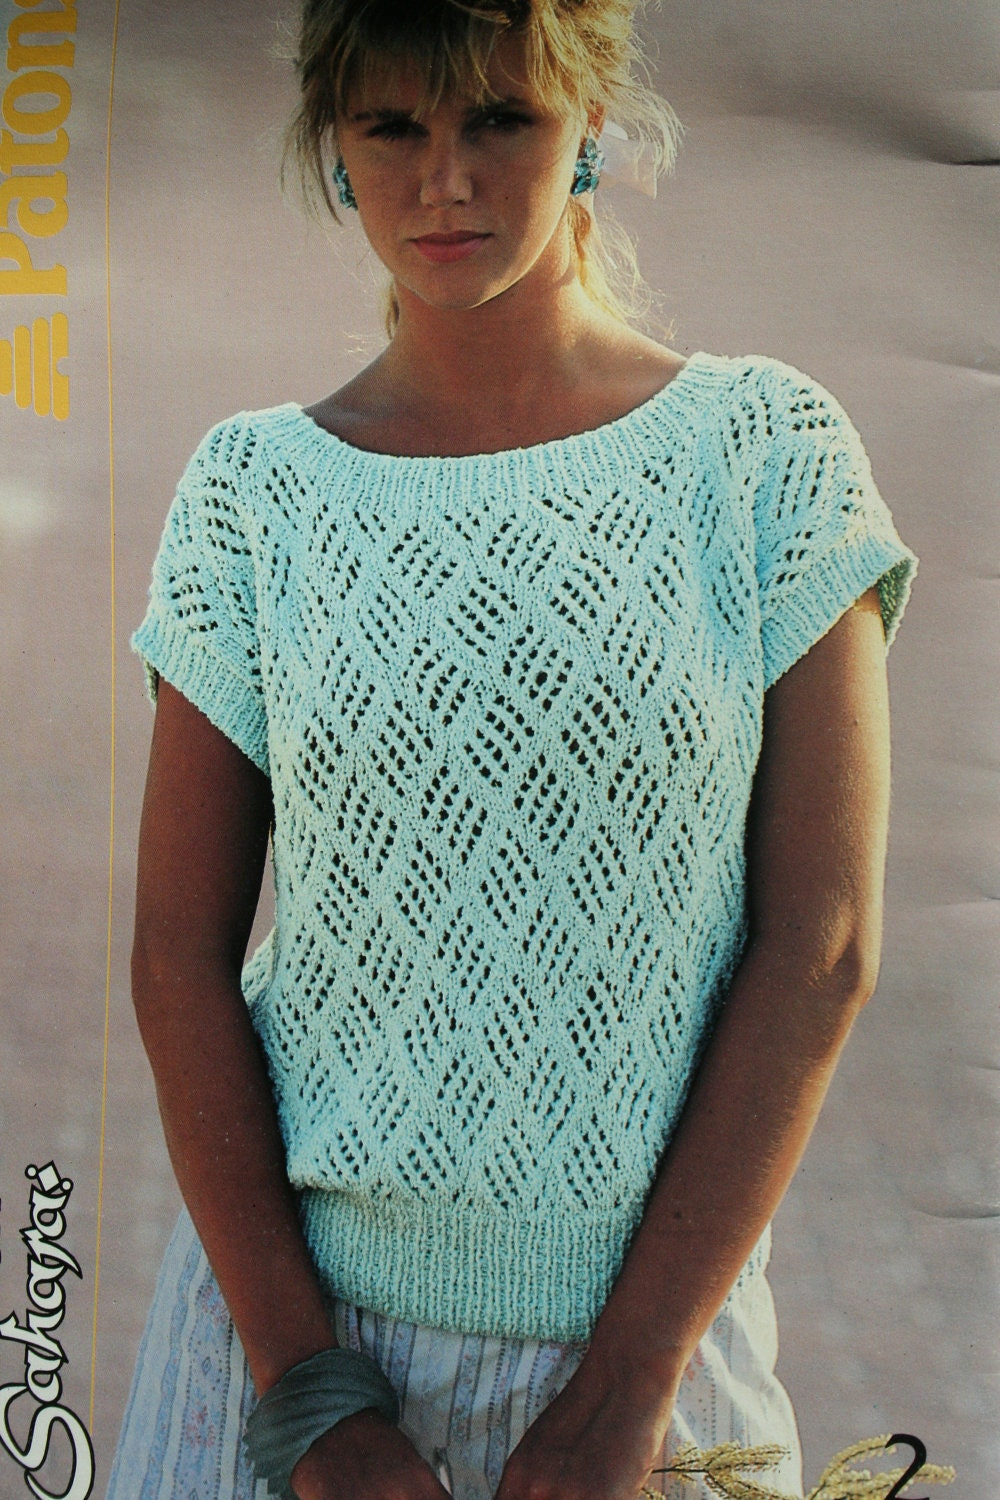 Knitting Designs For Ladies : Sweater knitting patterns summer women vintage cotton by